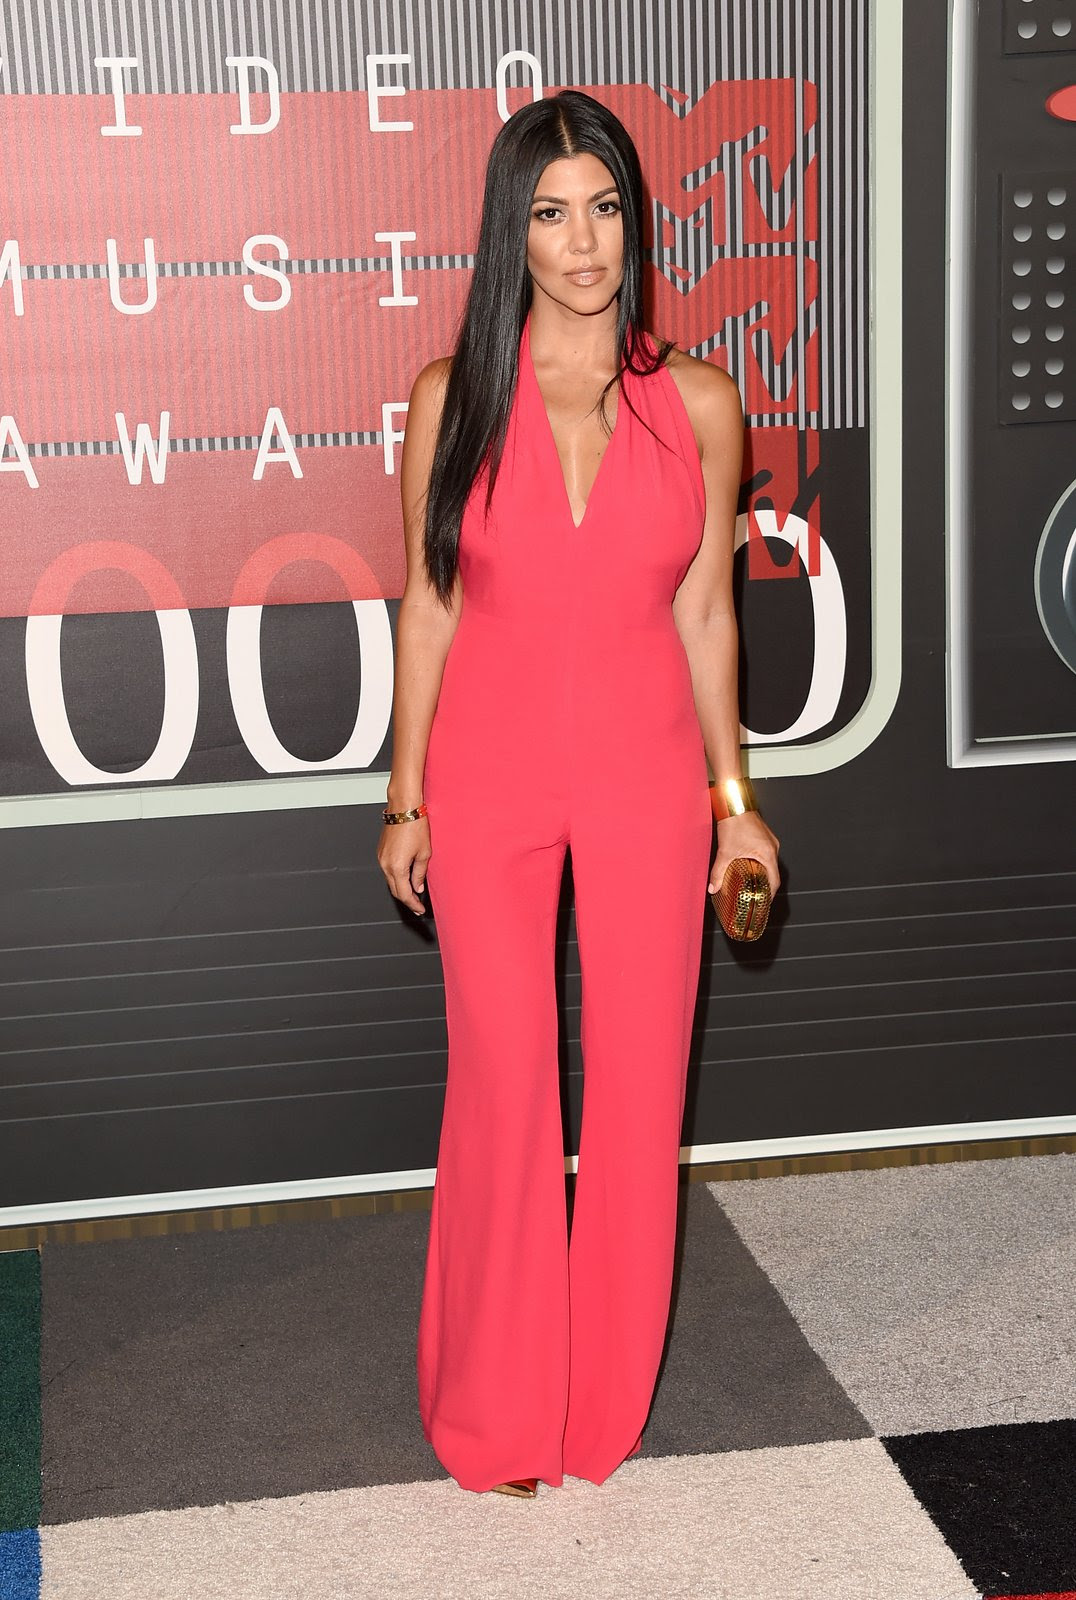 http://media.vogue.com/r/h_1600,w_1240/2015/08/30/kourtney-kardashian-vma-2015.jpg